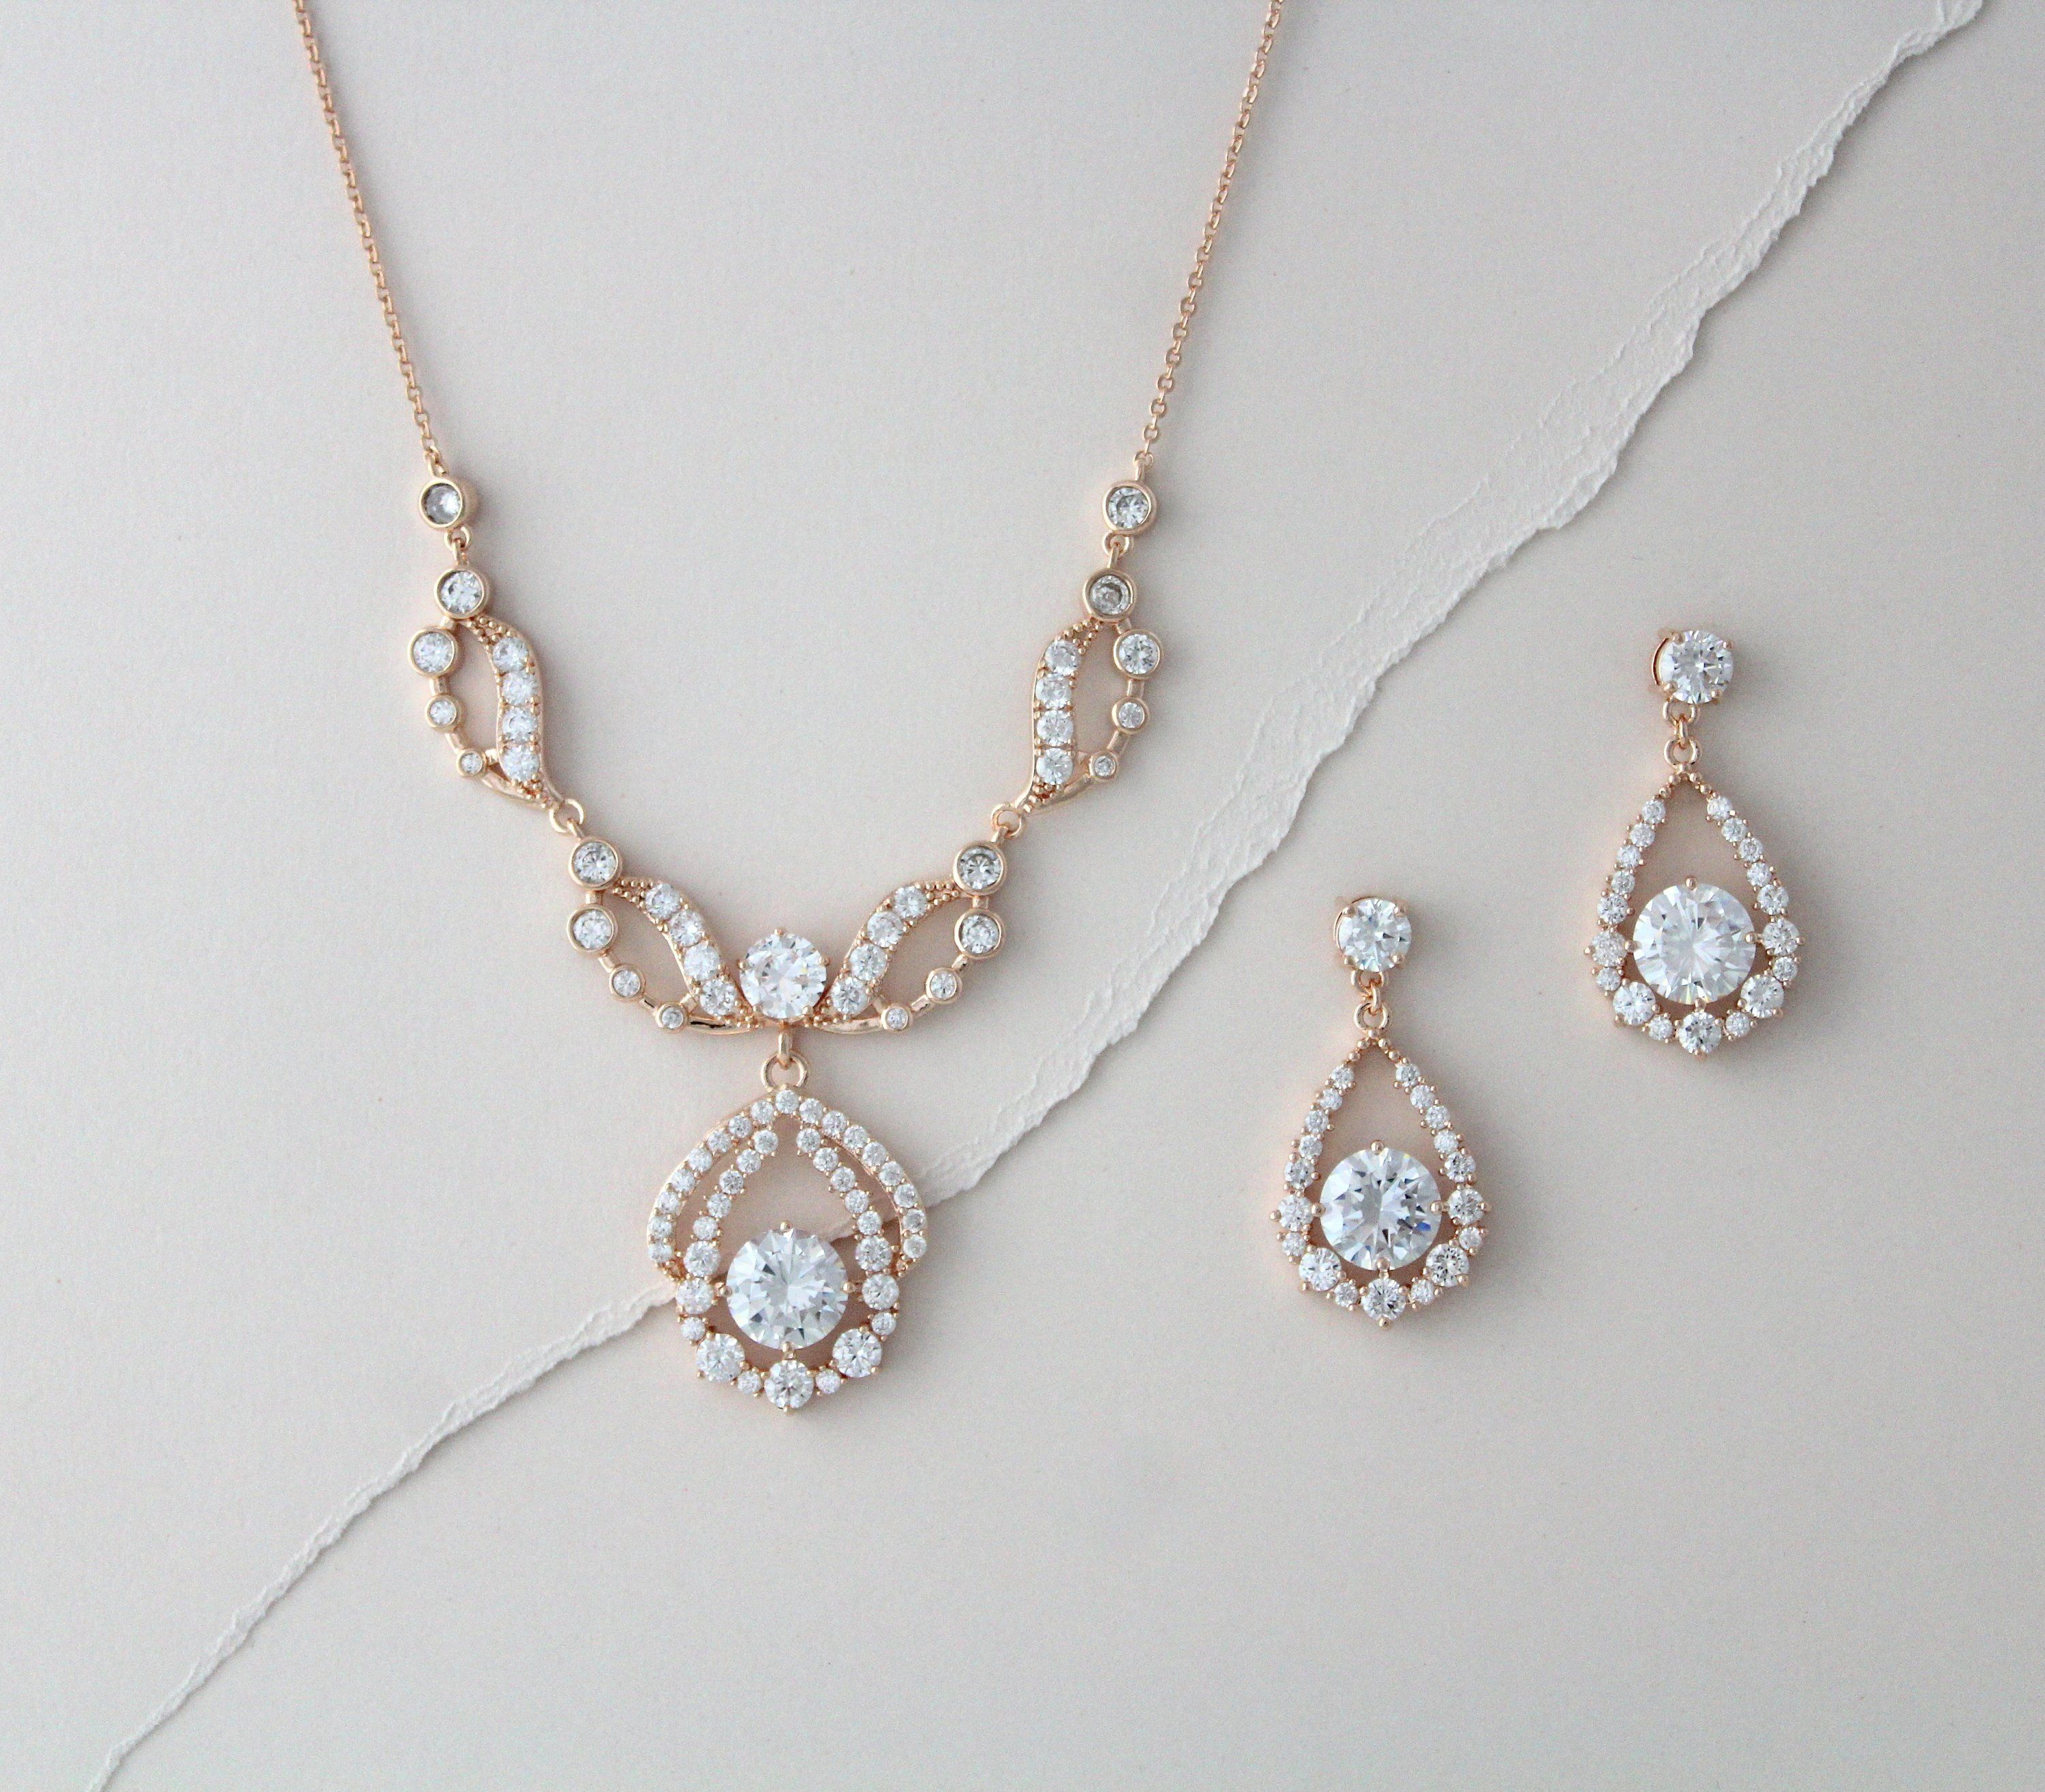 Rose Gold Necklace And Earring Set Bridal Jewelry Set Vintage Etsy Wedding Earrings Drop Crystal Drop Earrings Wedding Gold Bridal Necklace